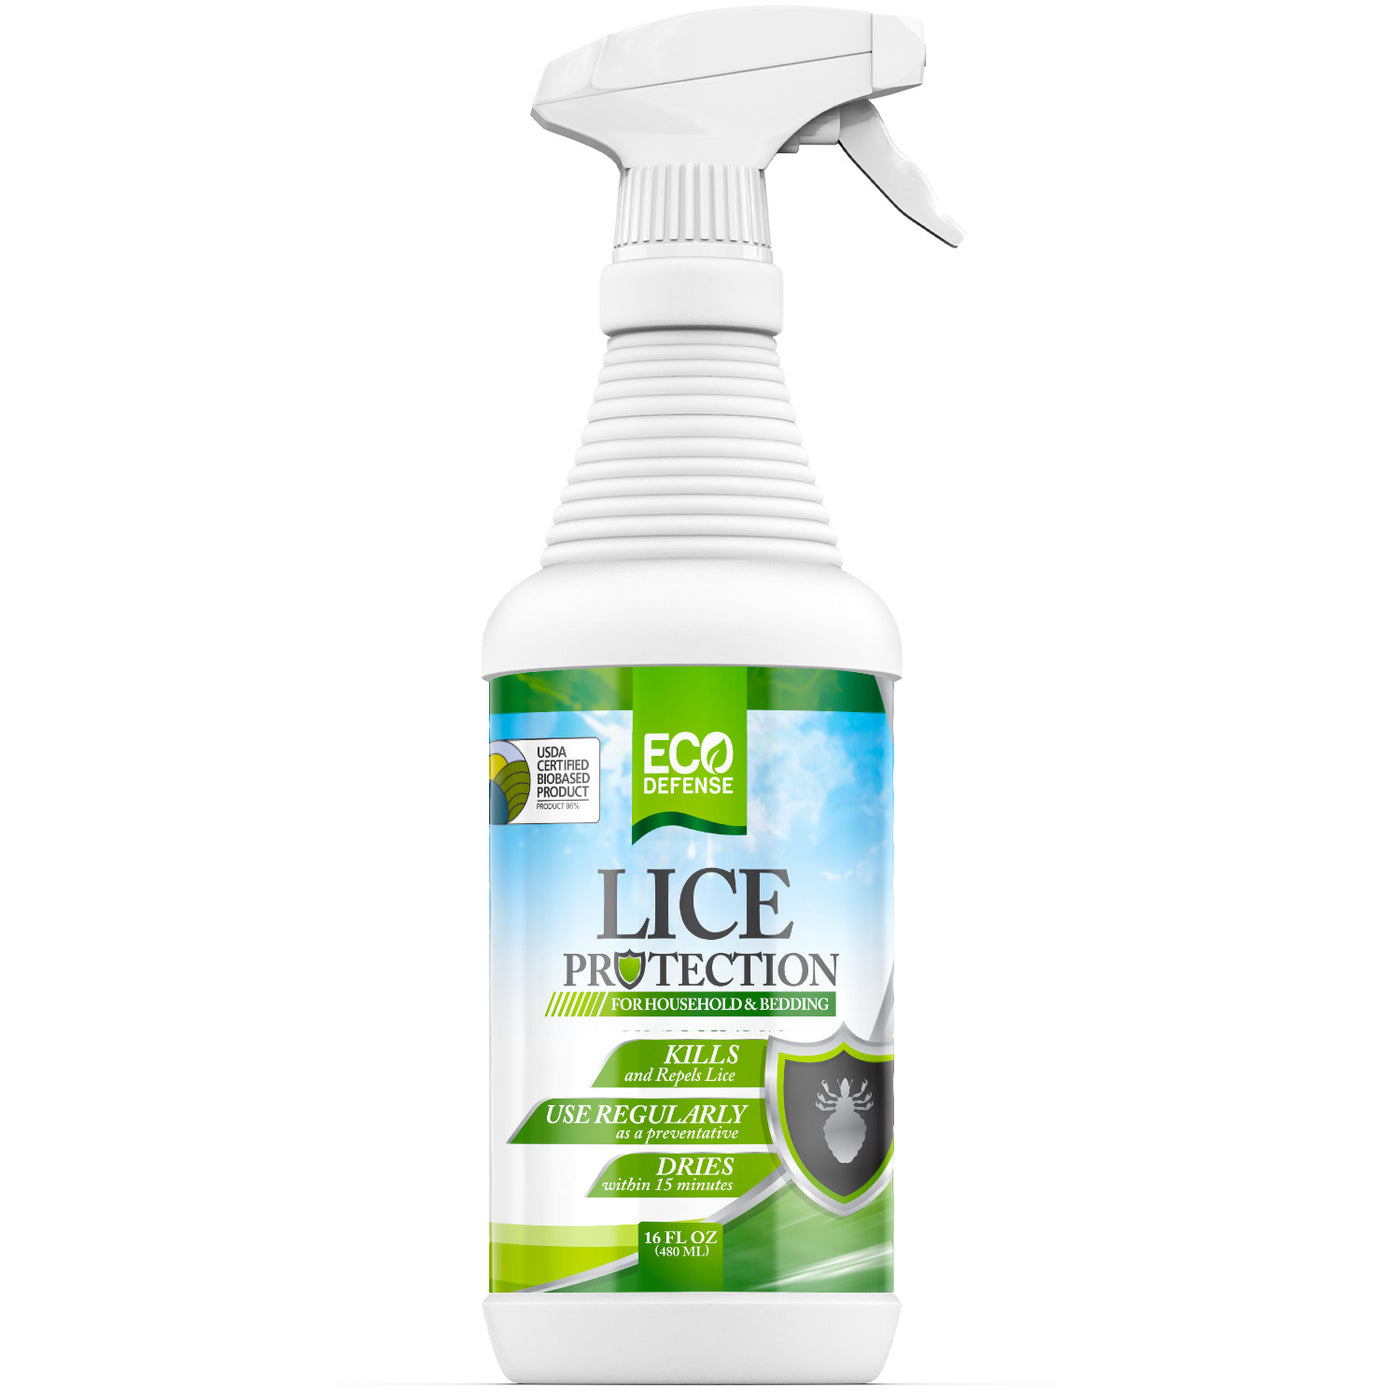 Home Lice Treatment & Prevention -  USDA Biobased